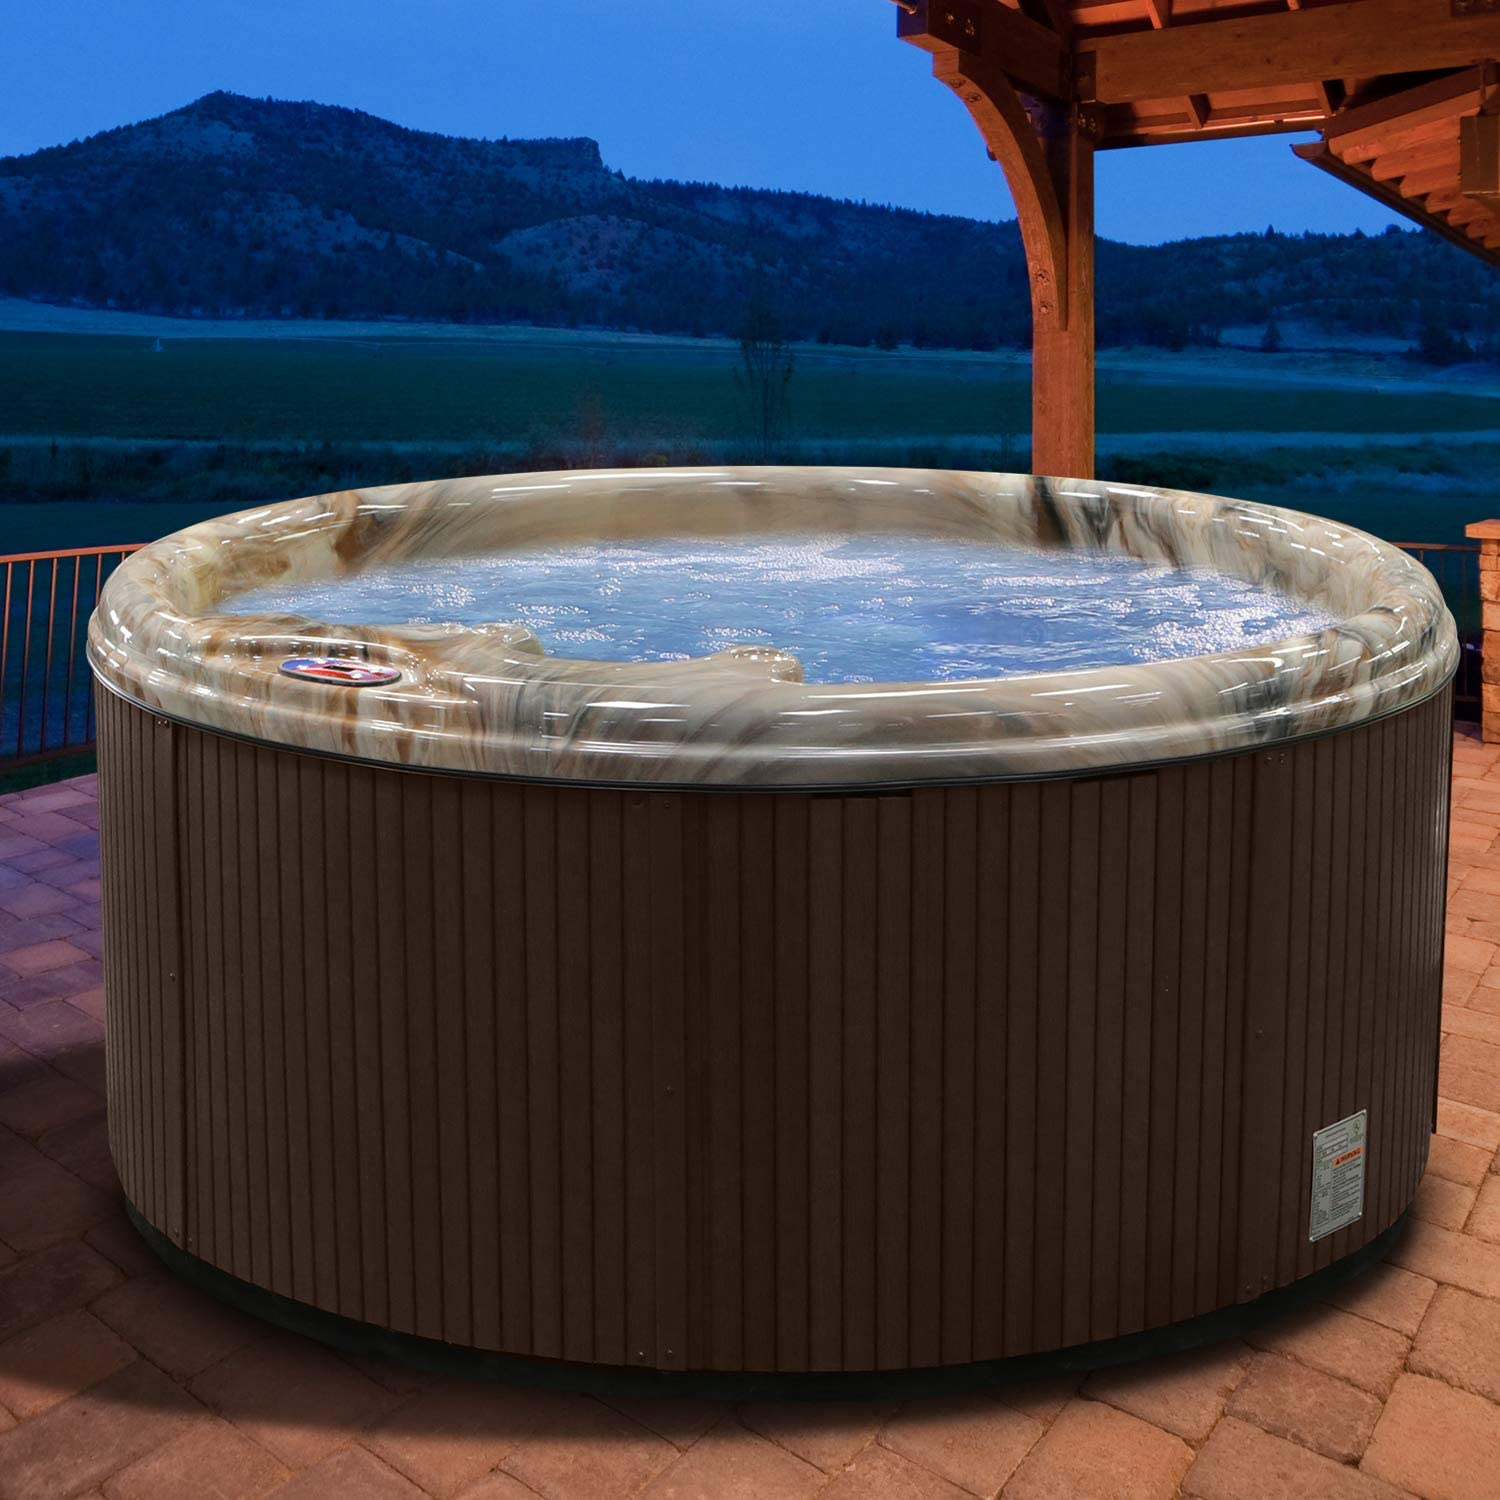 American Spas AM-511RM 5-Person 11-Jet Round Spa with Multi Color Spa Light, Tuscany Sun and Mahogany